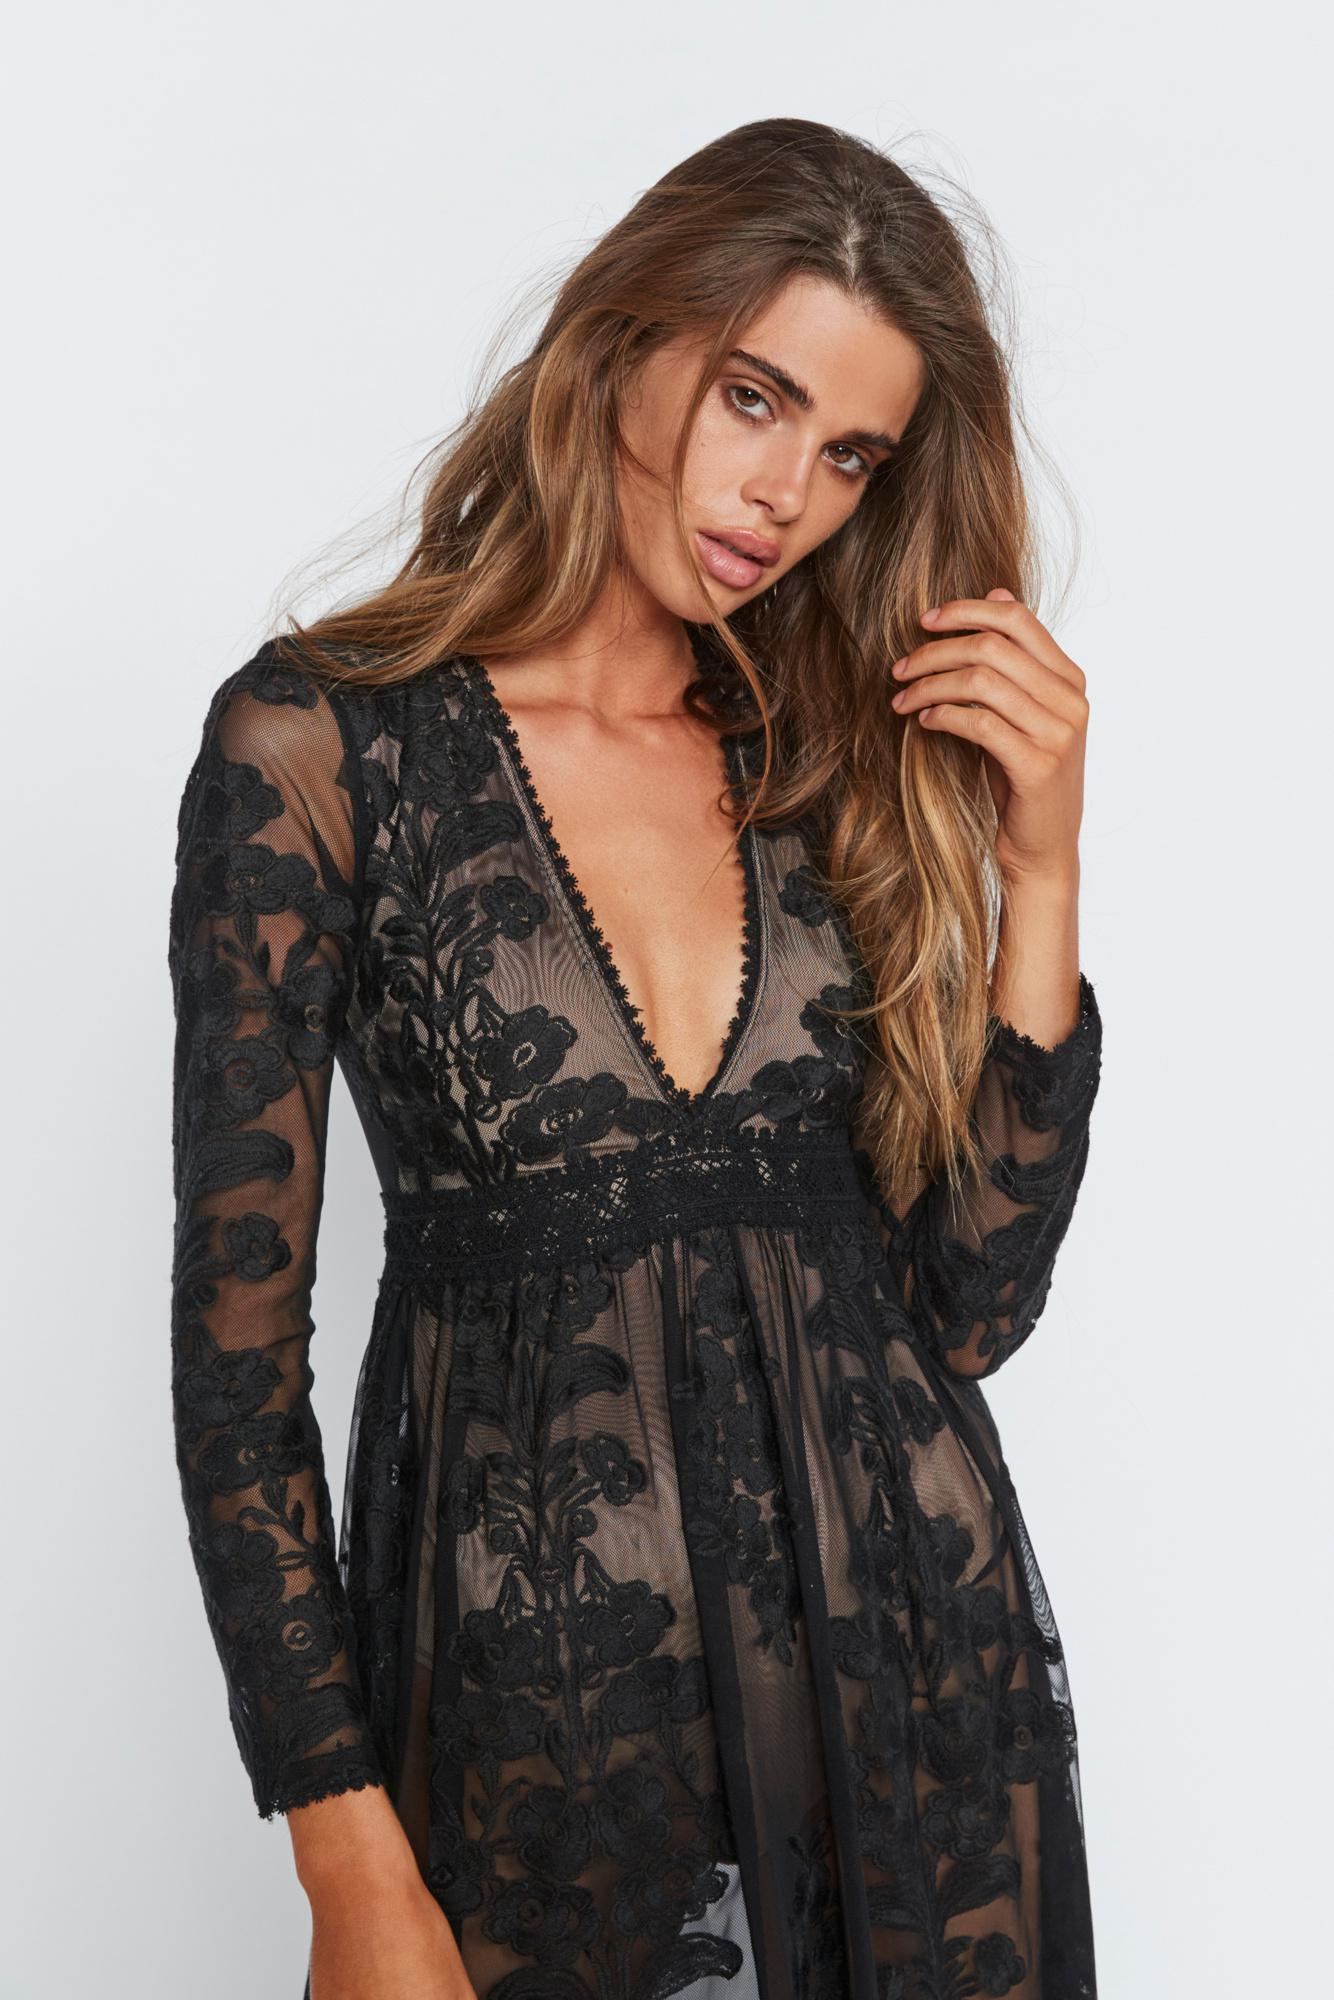 9933f3a0e4b6 Free People Temecula Maxi Dress By For Love & Lemons in Black - Lyst